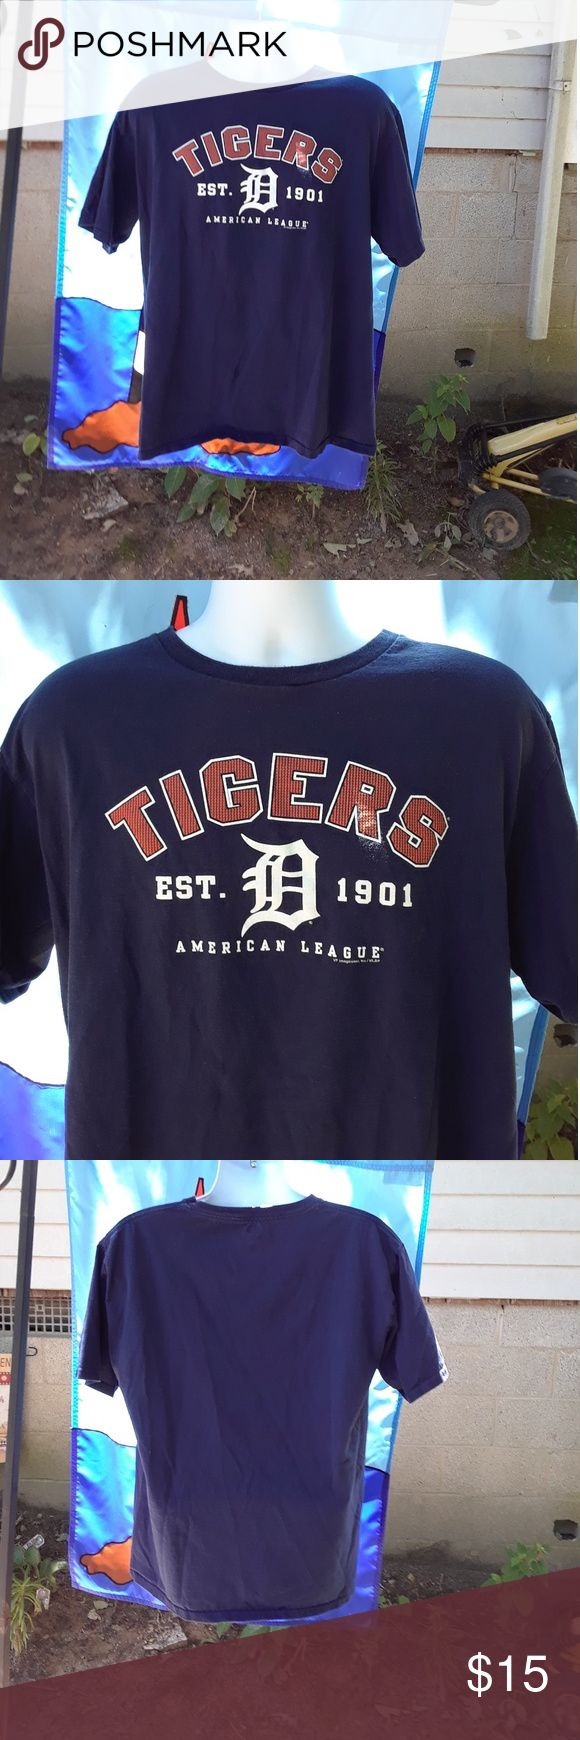 Selling this Detroit Tigers T-shirt men's size large on Poshmark! My username is: alicesales. #shopmycloset #poshmark #fashion #shopping #style #forsale #MLB #Other